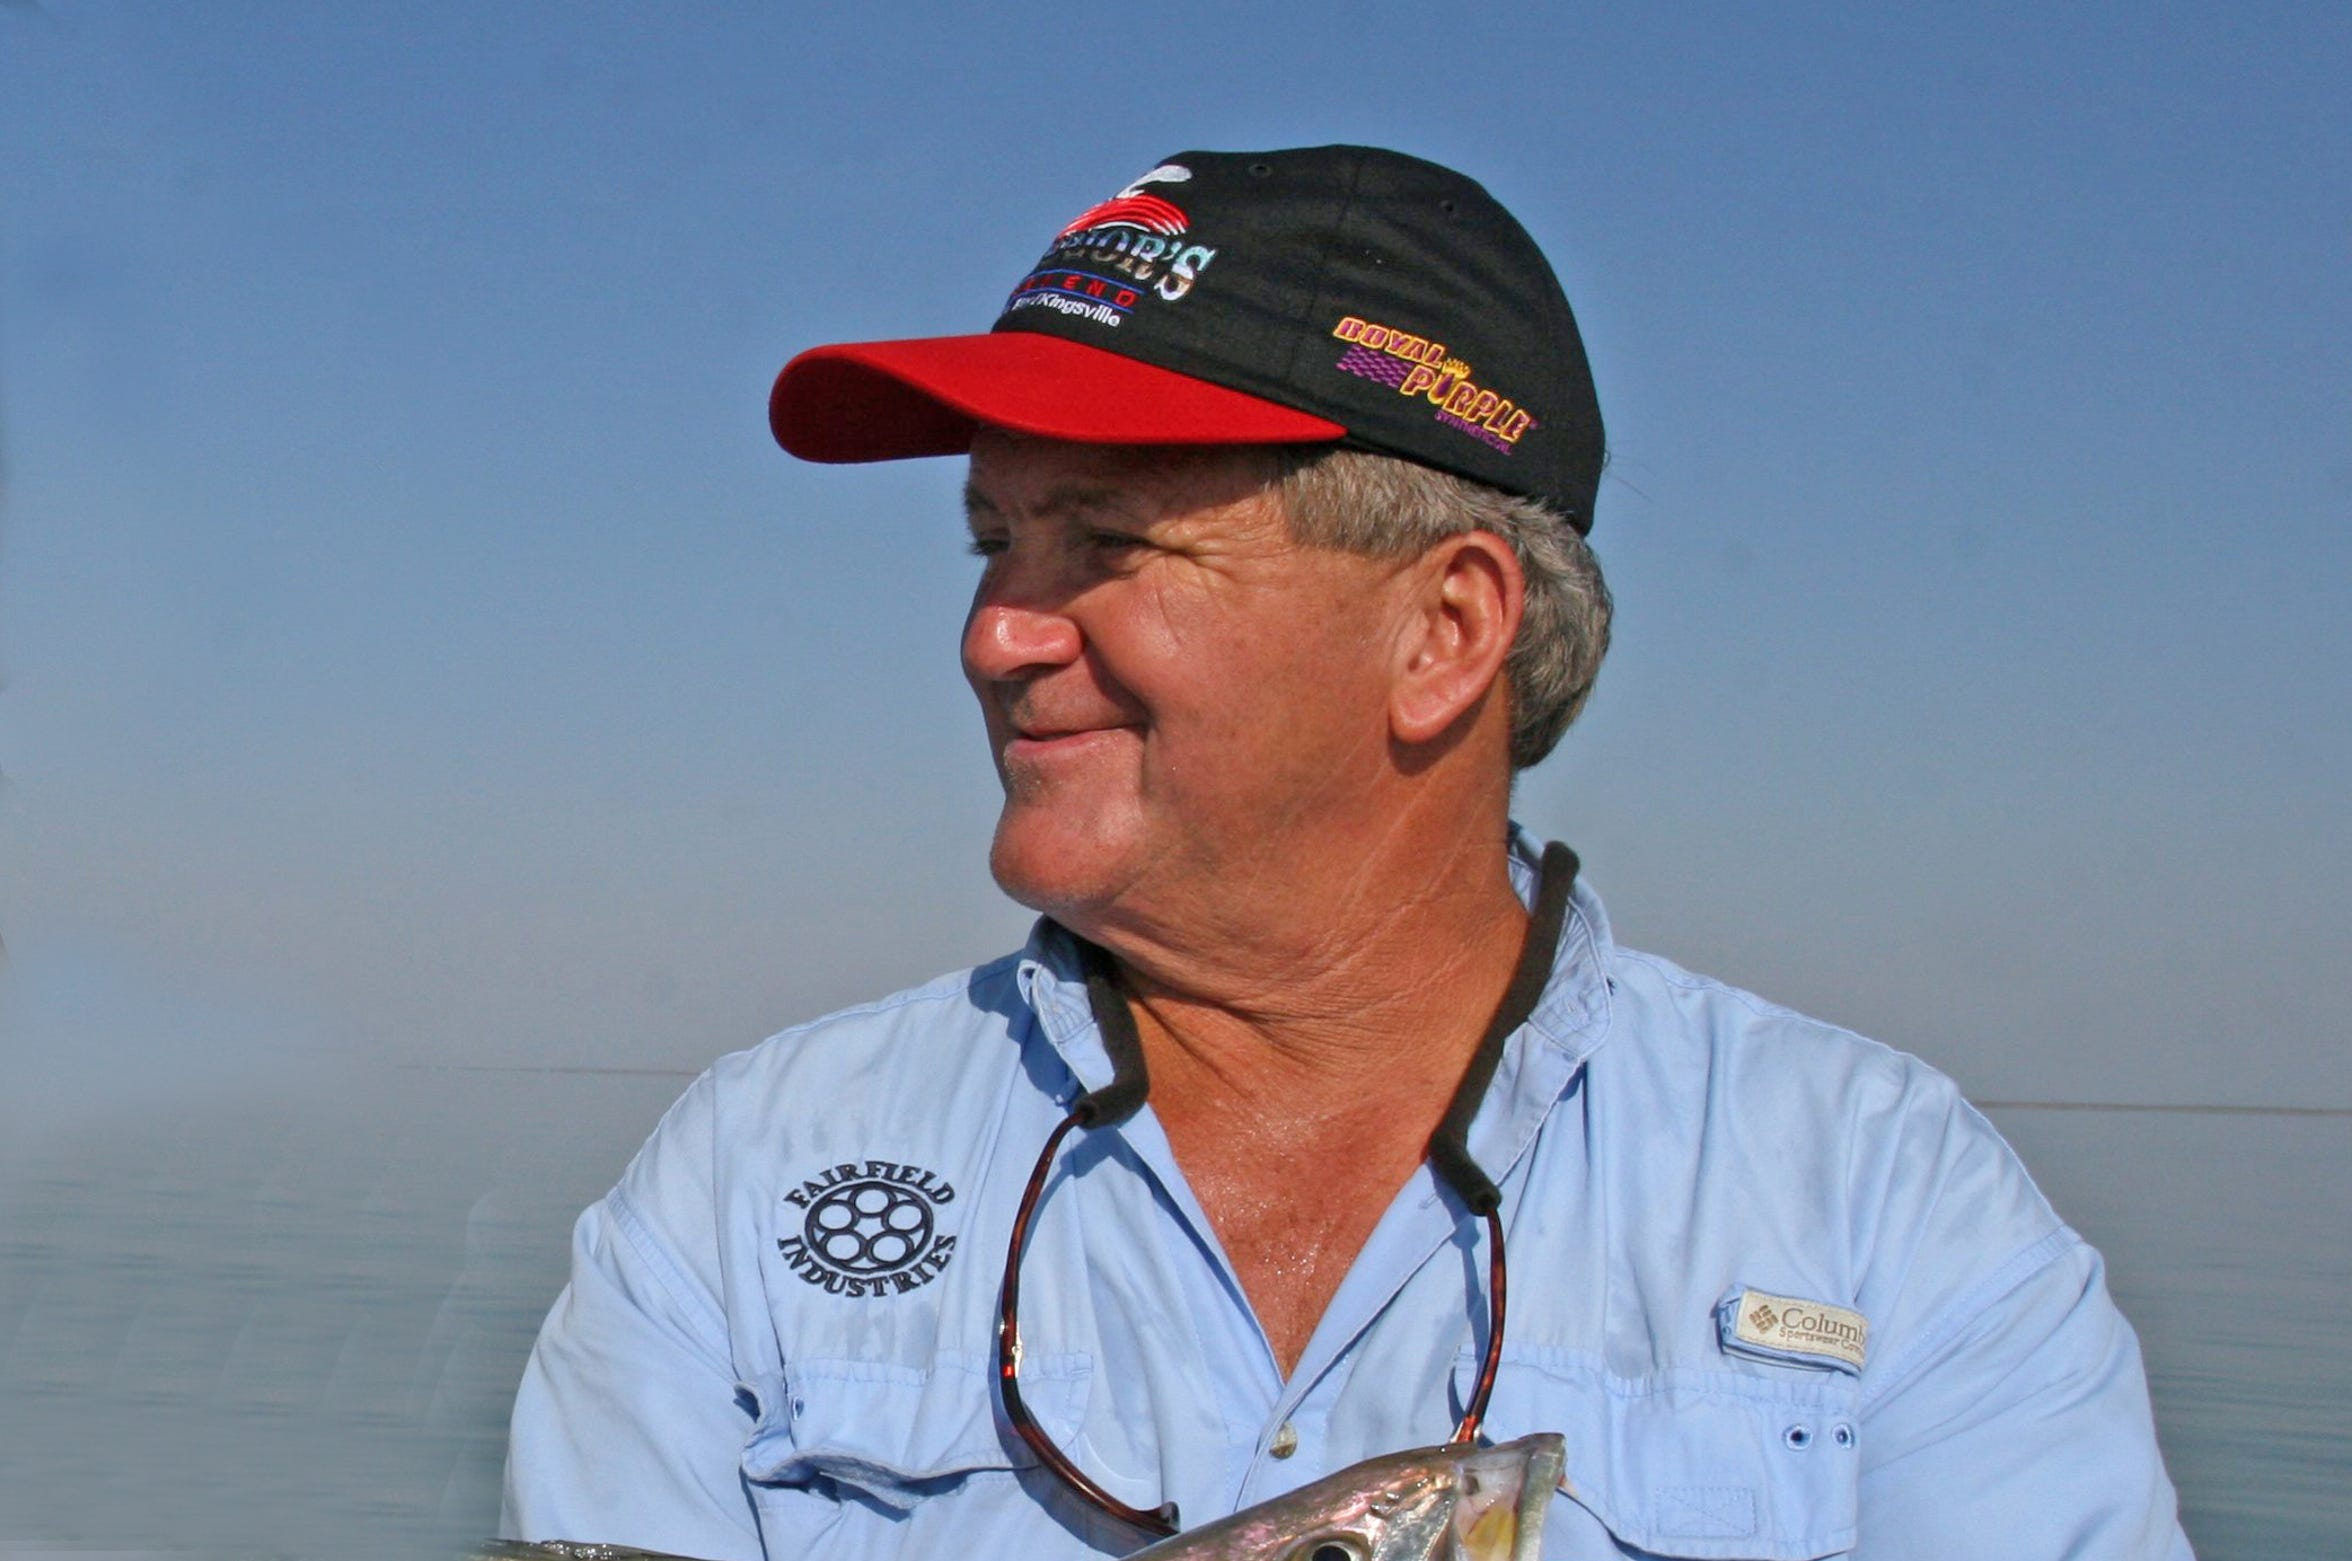 Capt. Jim Leavelle chased tarpon for 17 summers near Galveston, but has started searching for them in the Coastal Bend.